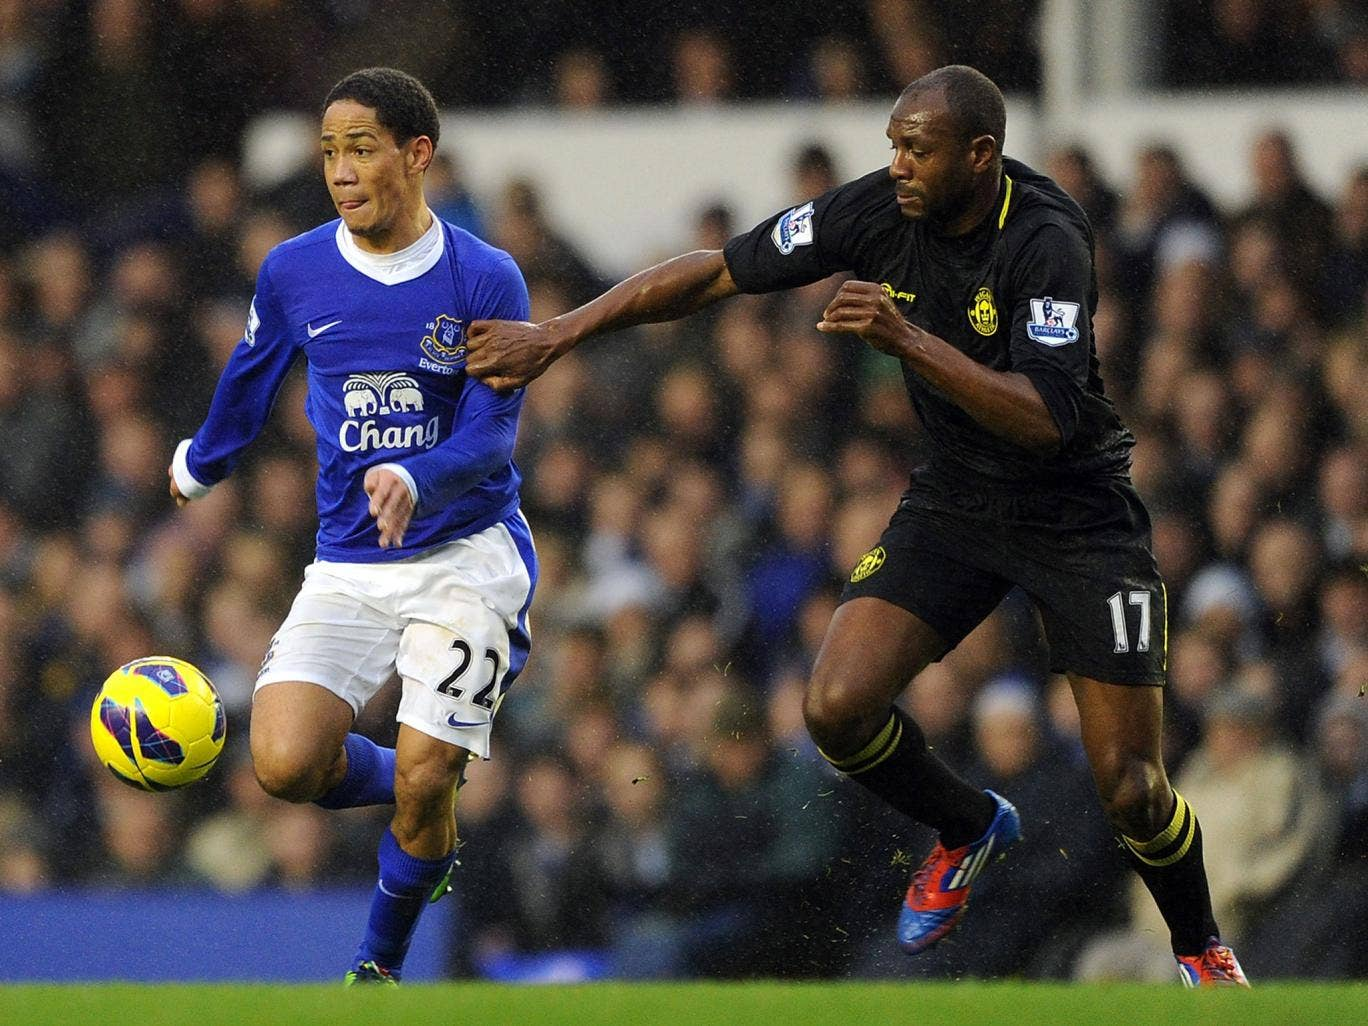 Steven Pienaar skips past his man in Everton's match against Wigan